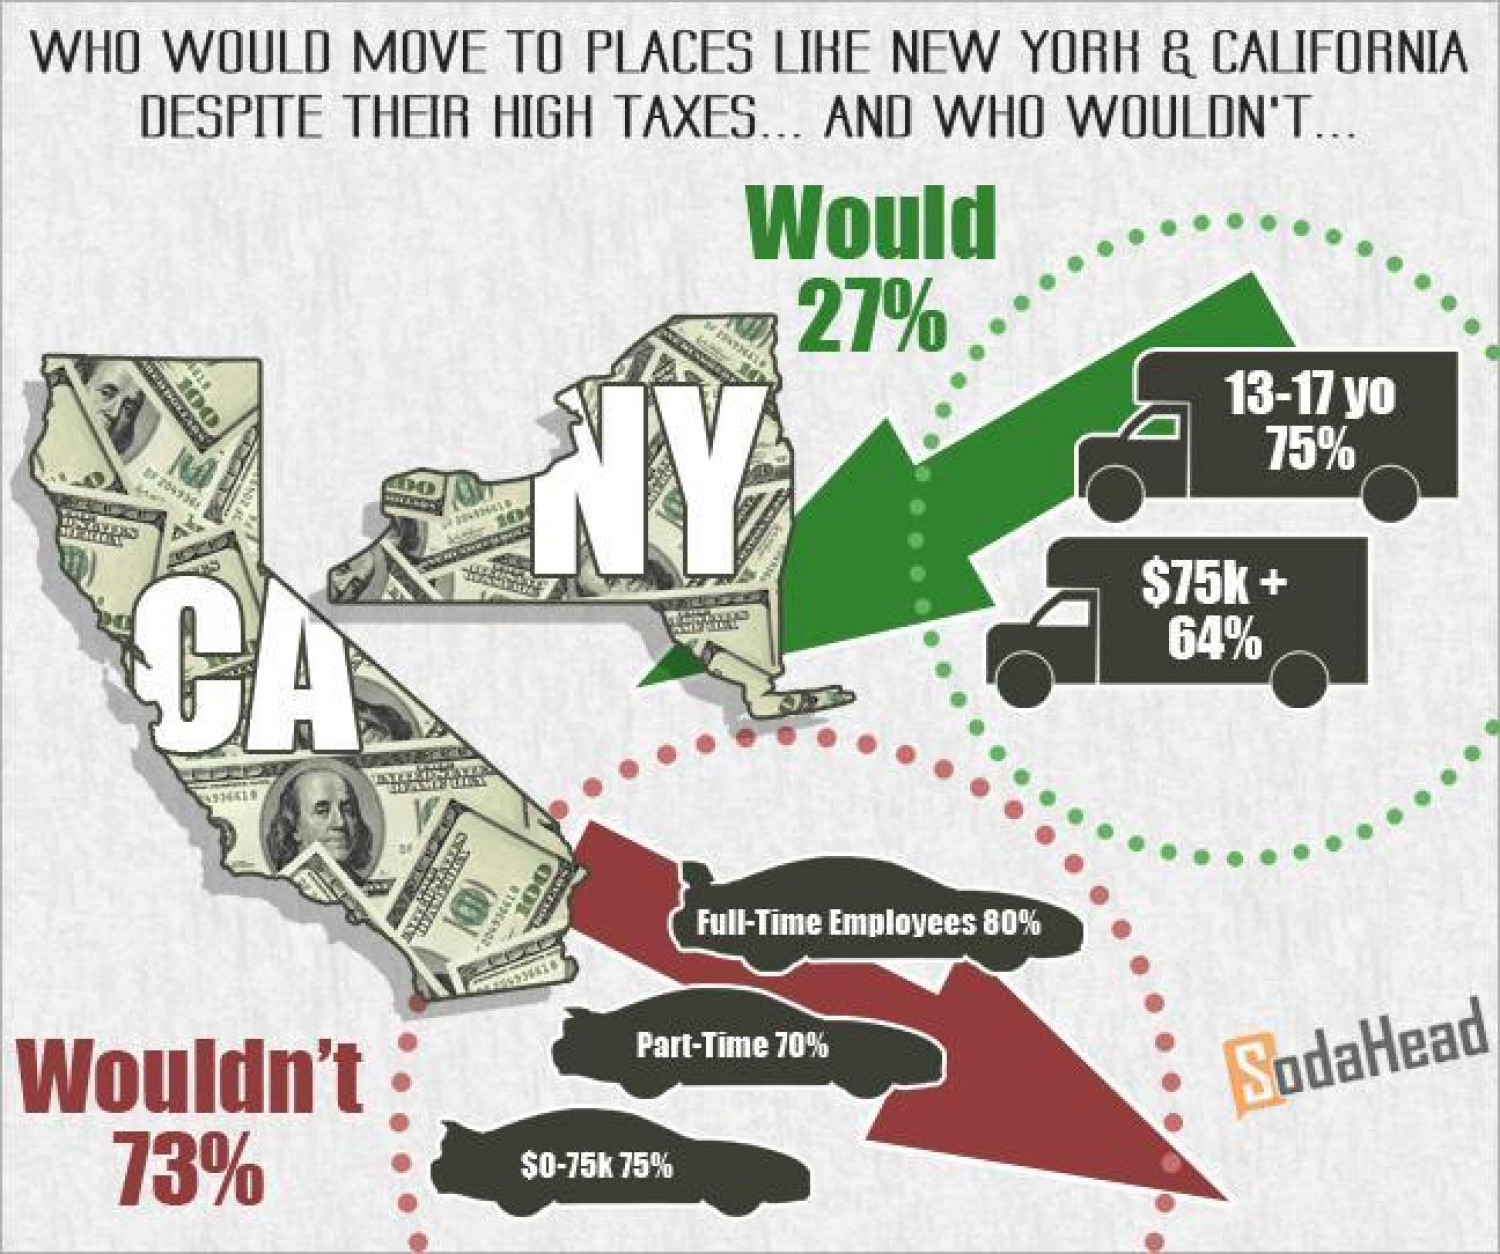 PUBLIC OPINION > Higher Taxes Stop People From Moving to Places Like New York and California Infographic